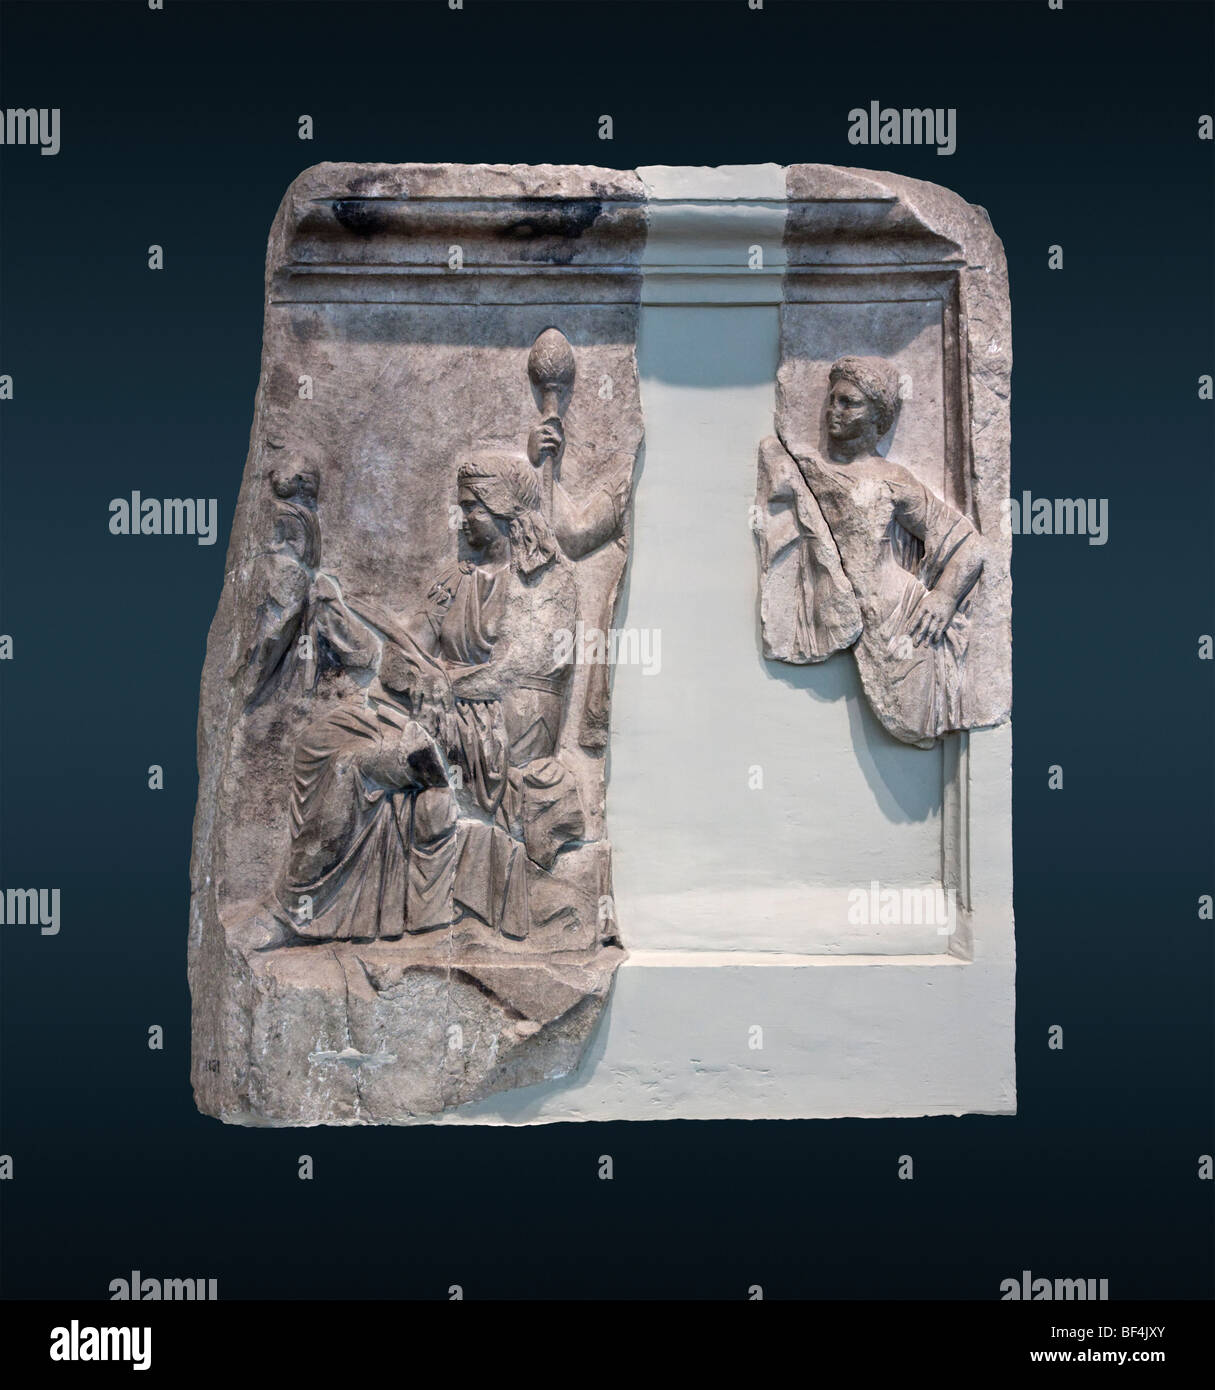 Relief in Piraeus depicting Nysa and two nymphs, one of which holds a thyrsos. Stock Photo